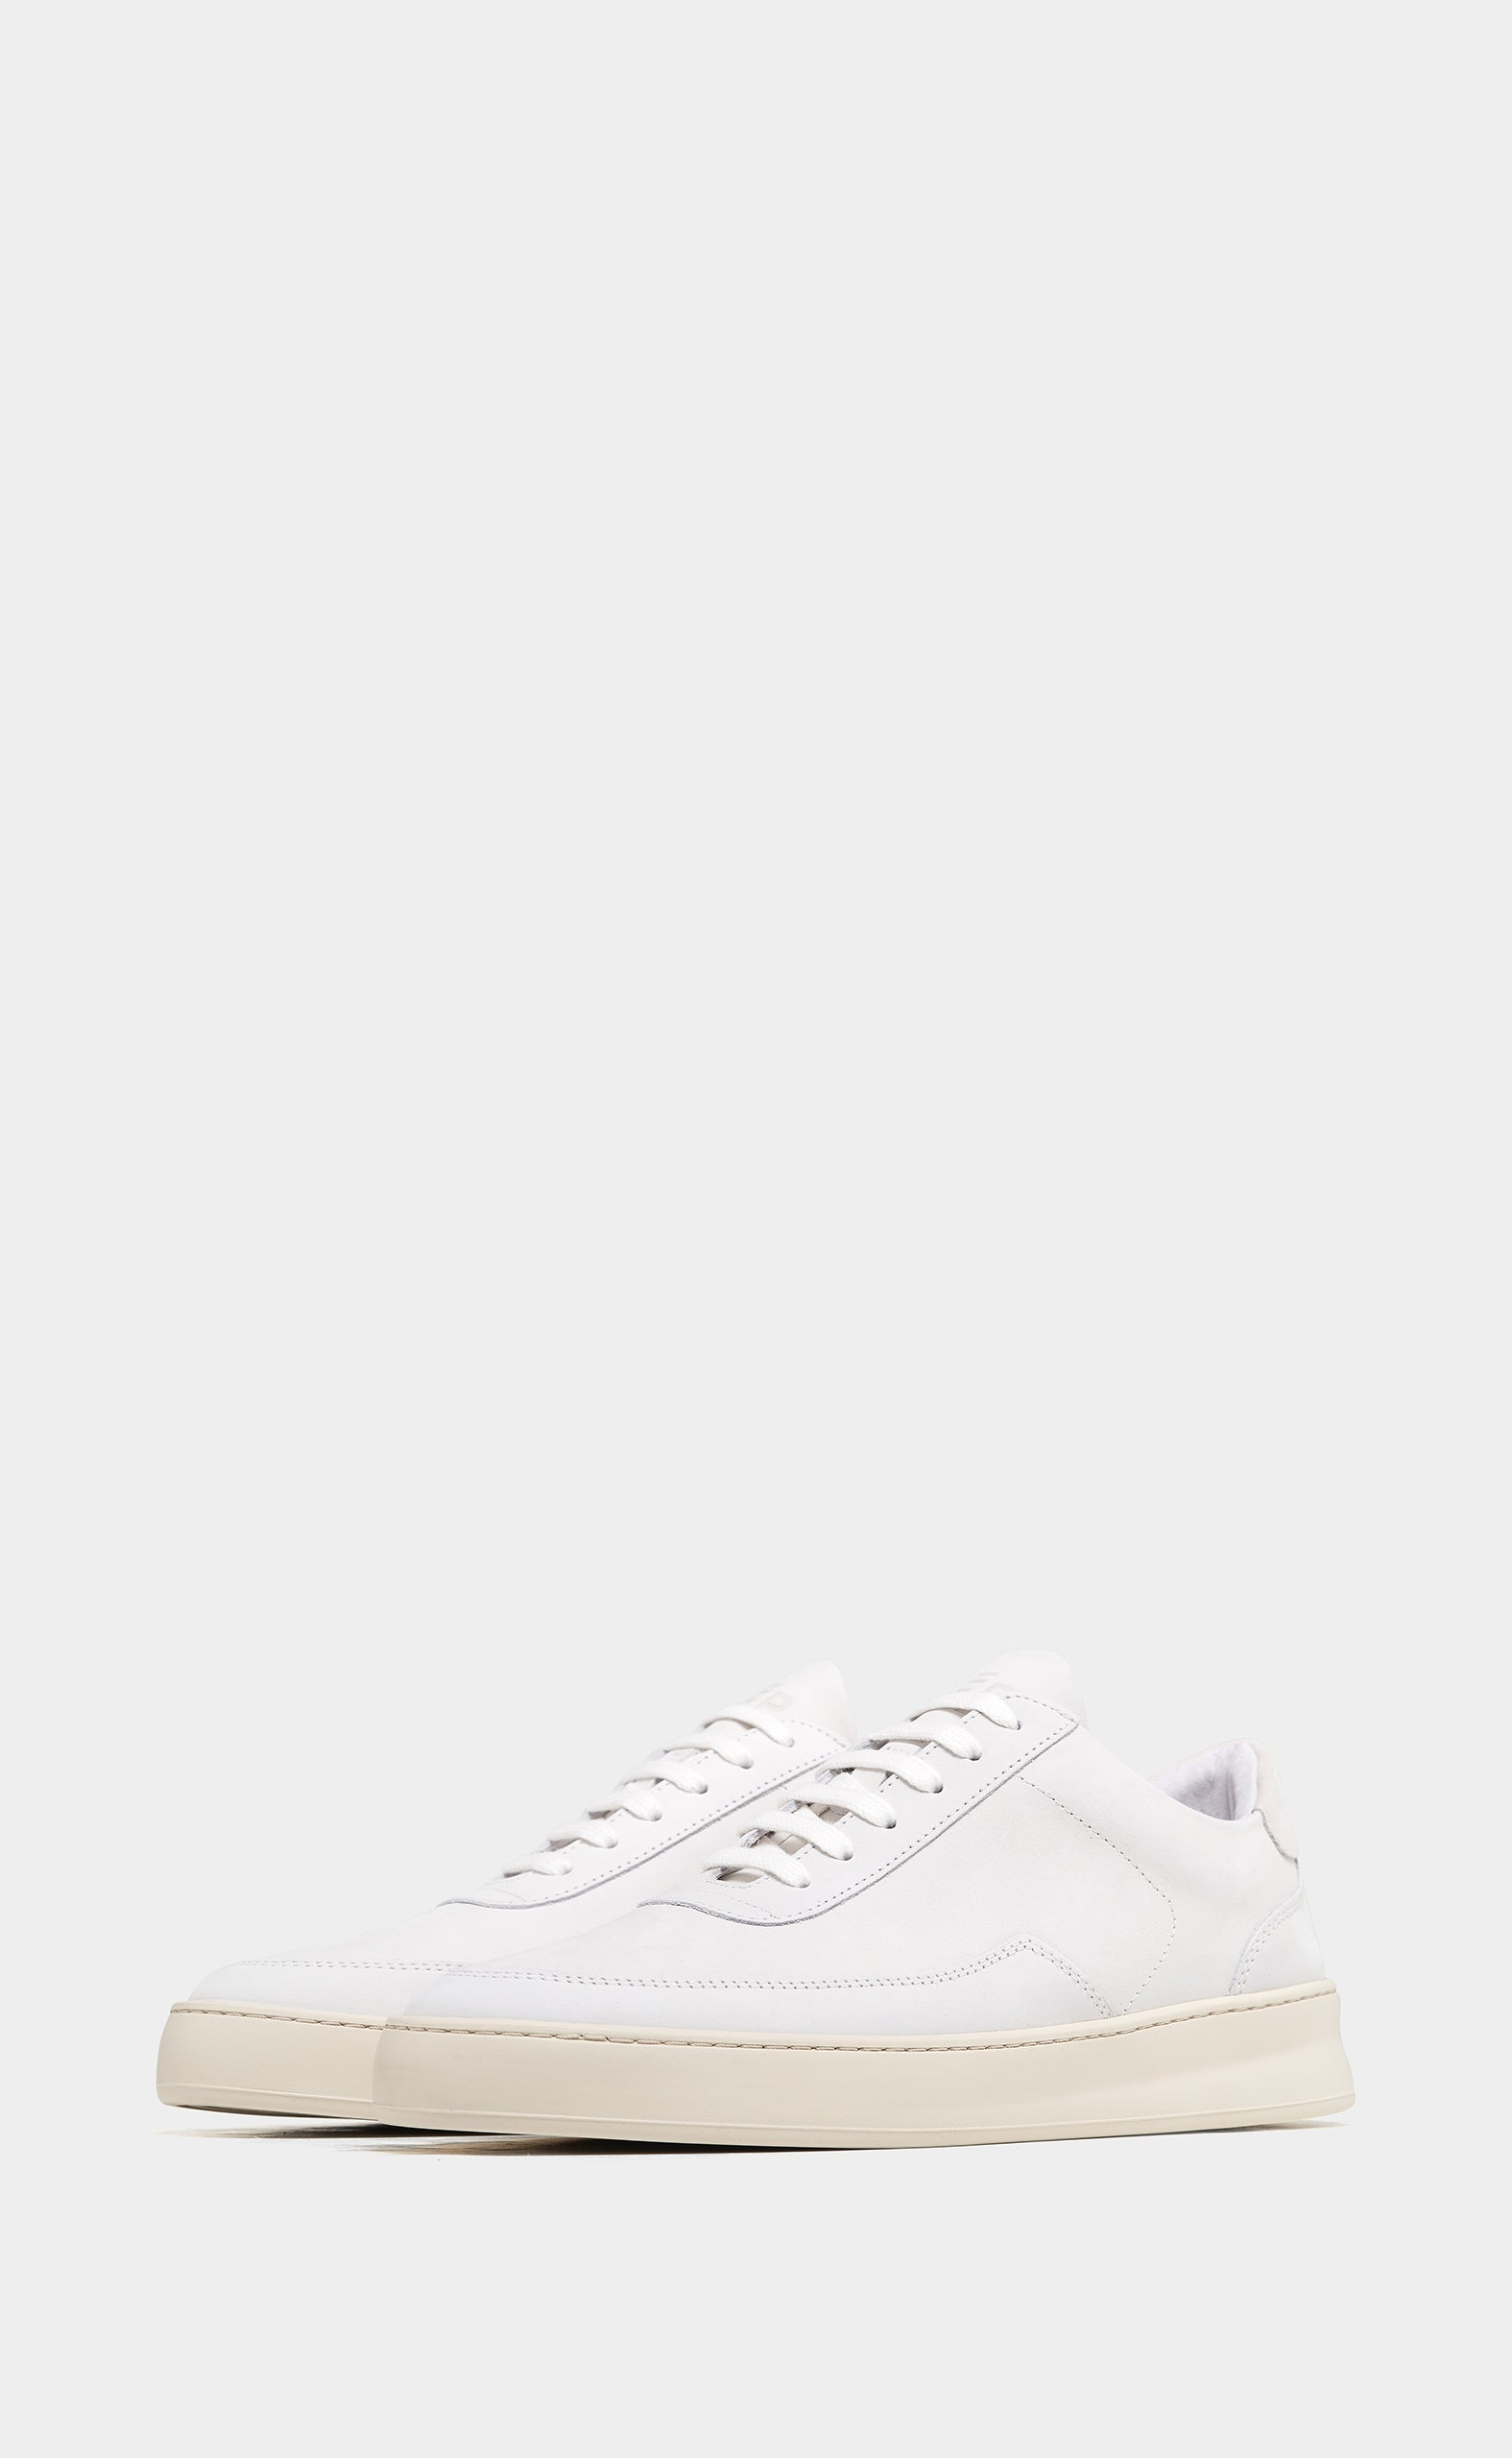 Low Mondo Plain Nardo Off White